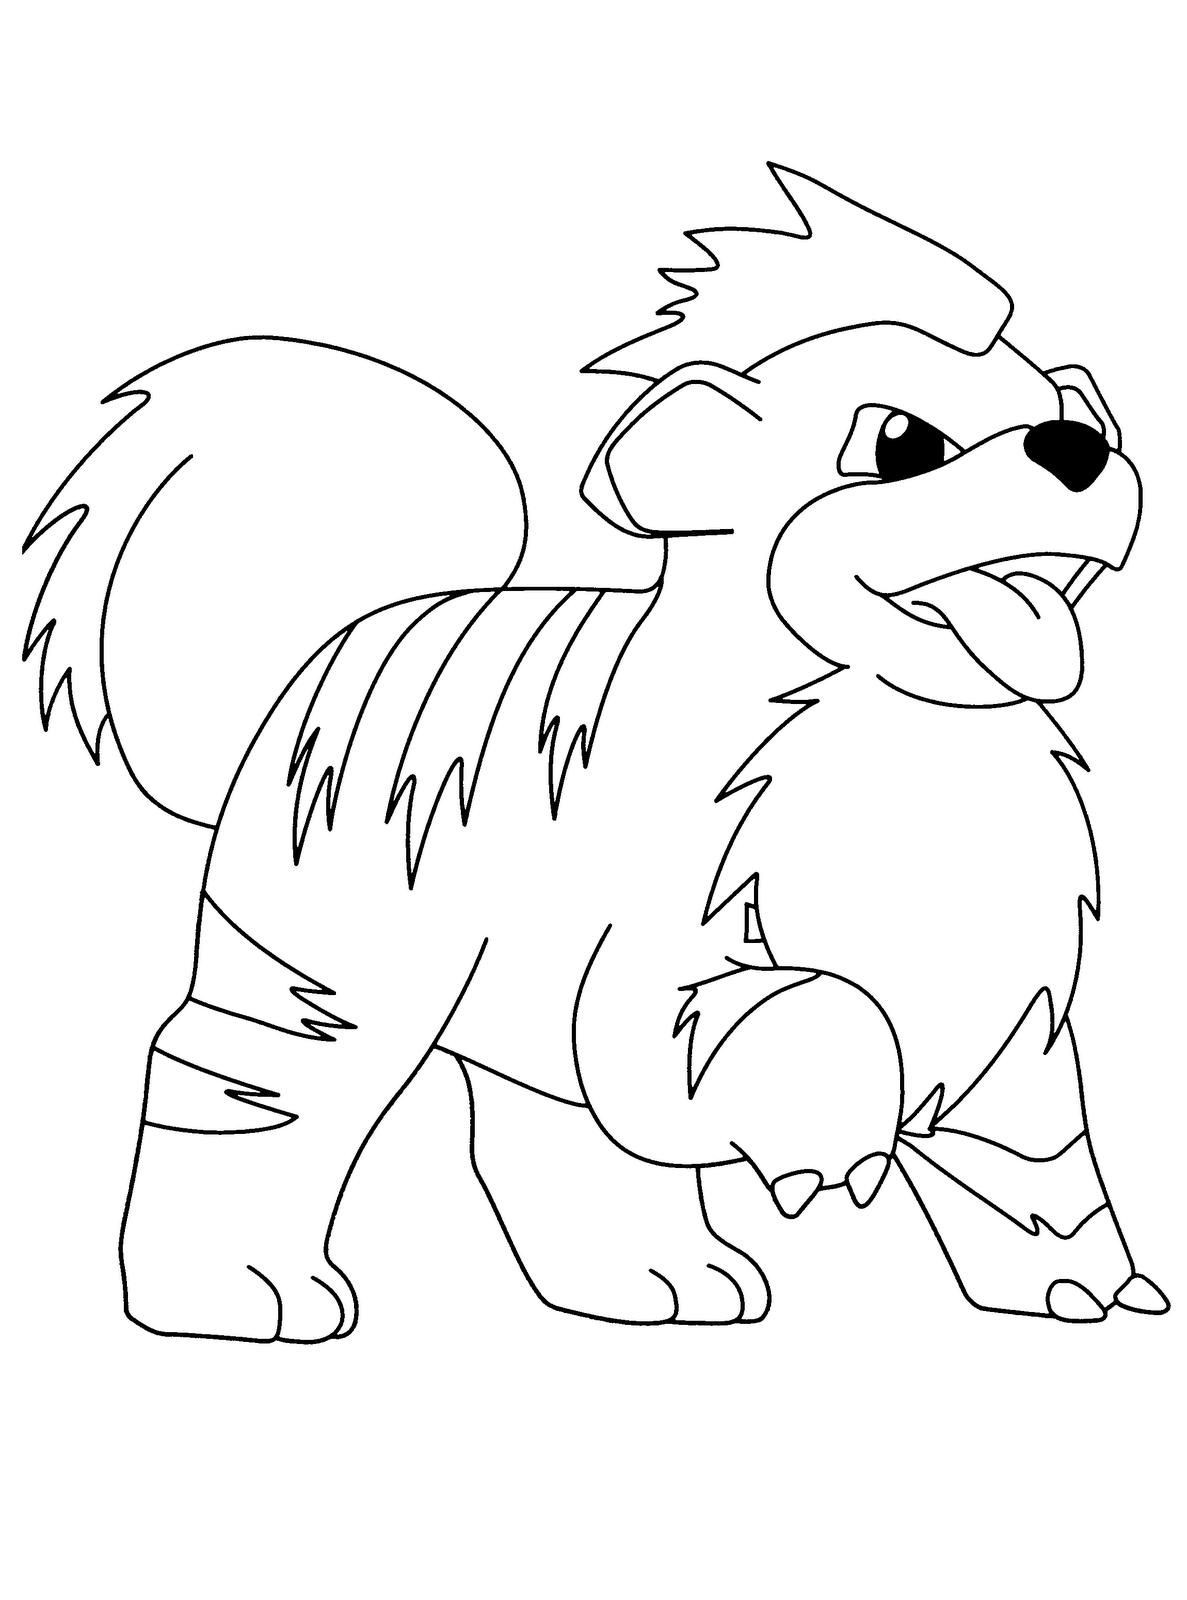 Coloring pages nintendo - Personnages Nintendo Pokemon Ondine 33711 Png 1187 1600 Print Coloring Pagespokemon